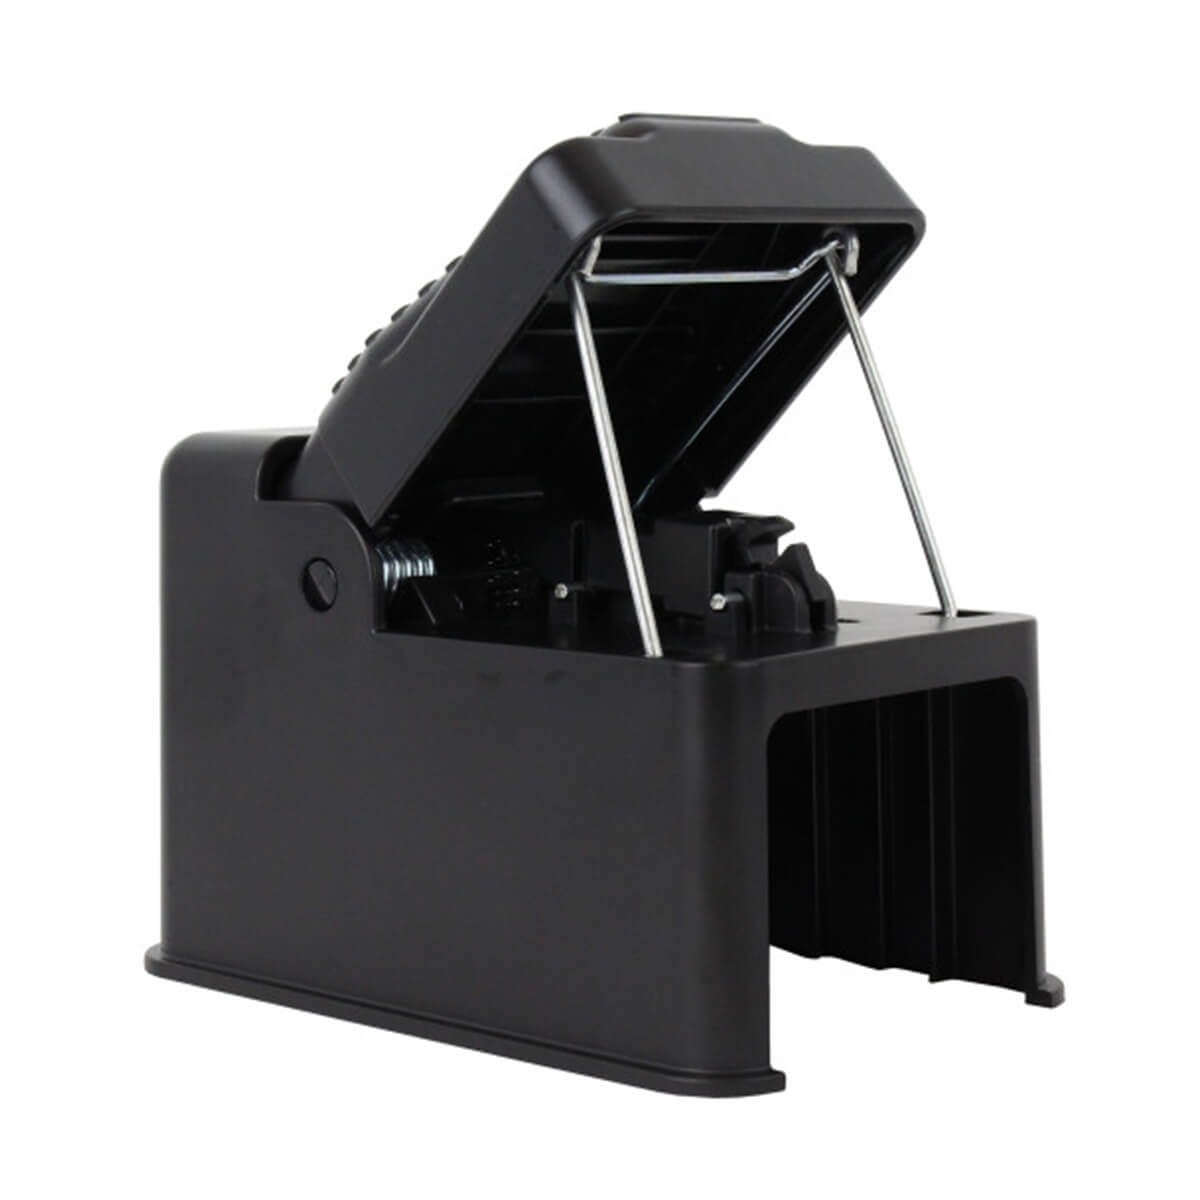 The Black Box Gopher Trap